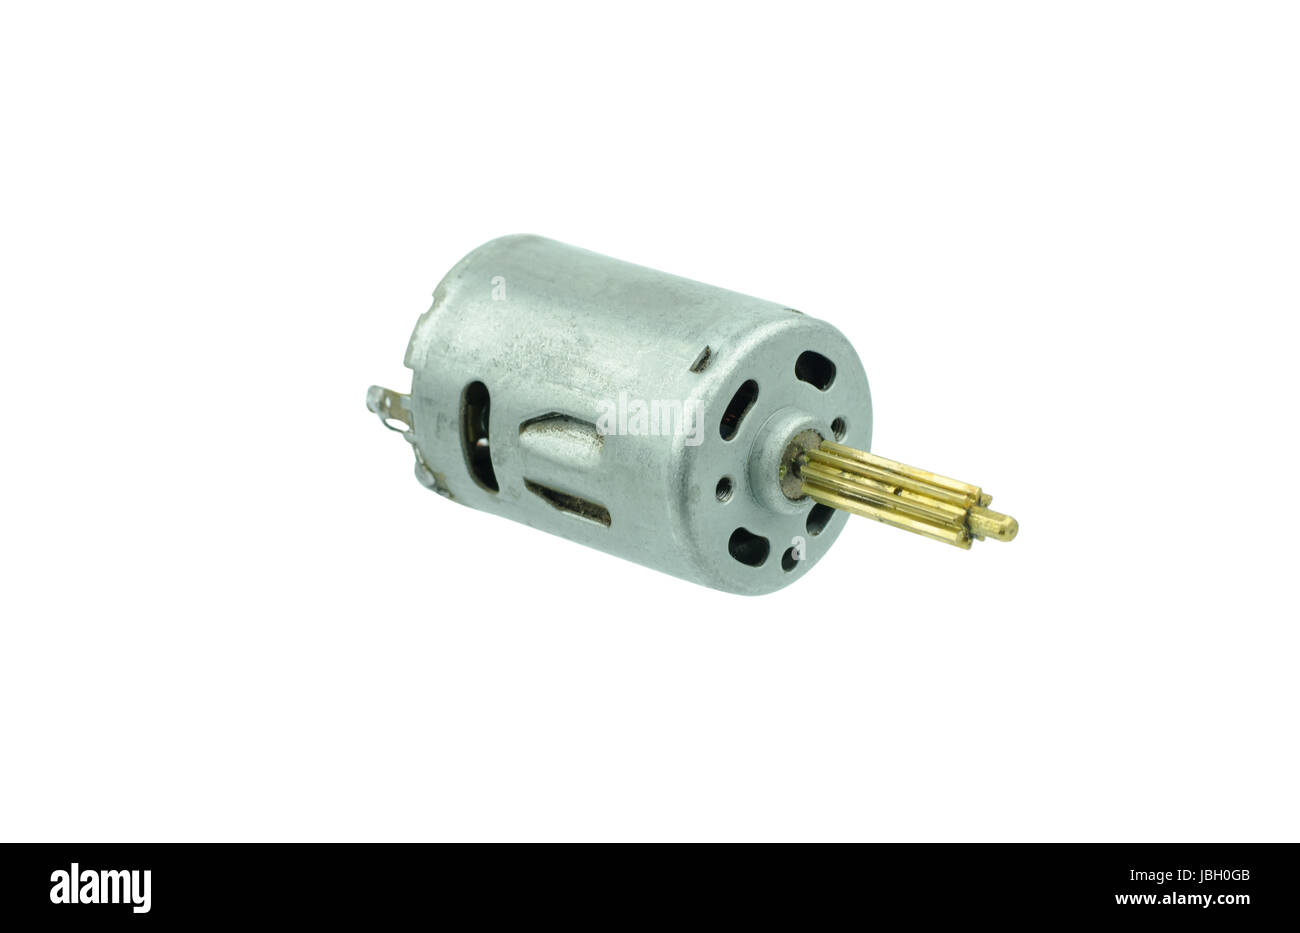 small dc motor gear on isolated white background Stock Photo